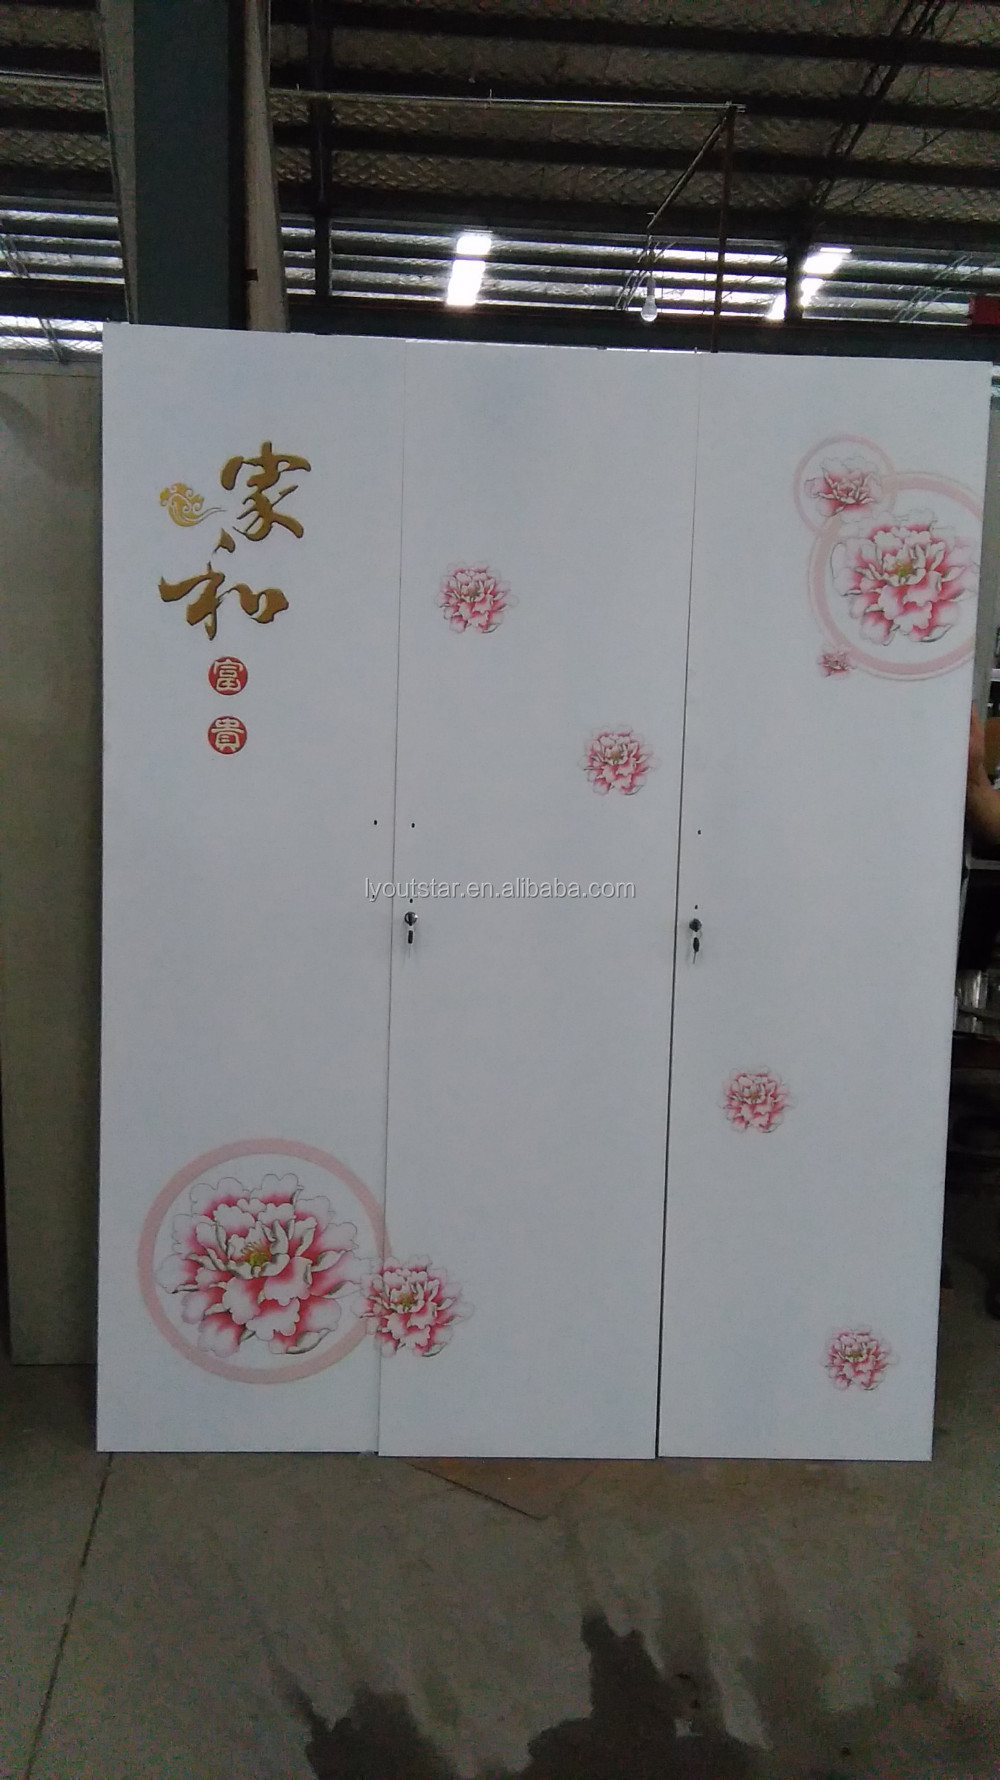 2 door clothing steel locker/wardrobe